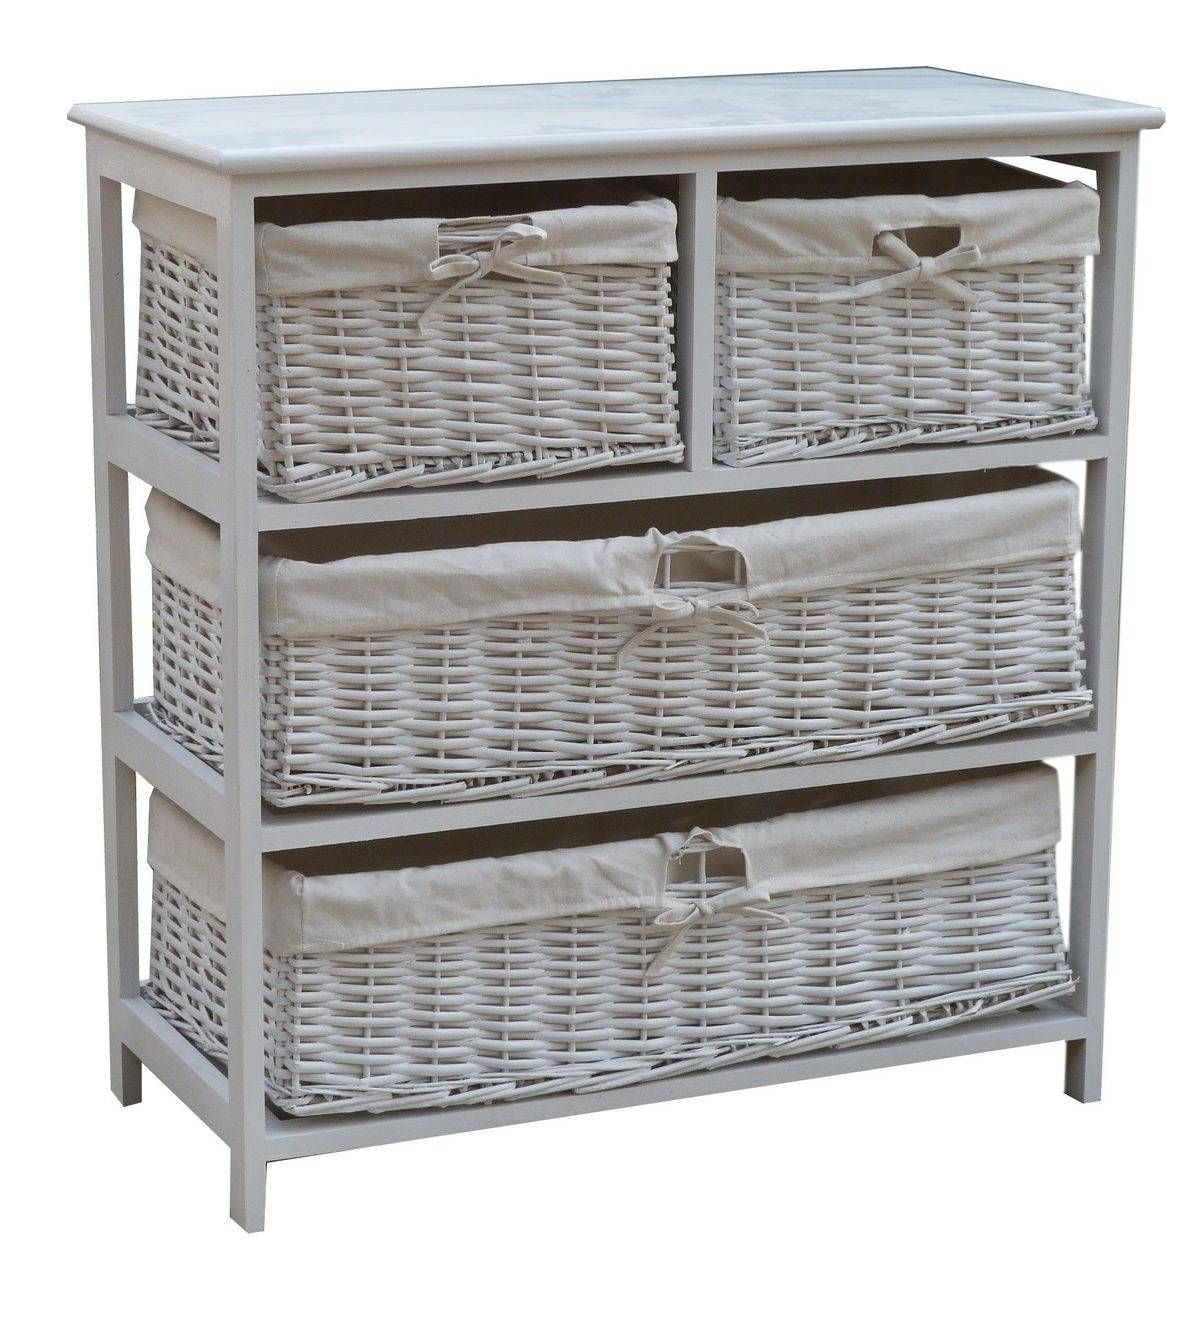 Wooden Storage Cabinet With Wicker Baskets Wooden Storage Cabinet White Storage Cabinets Wood Storage Cabinets